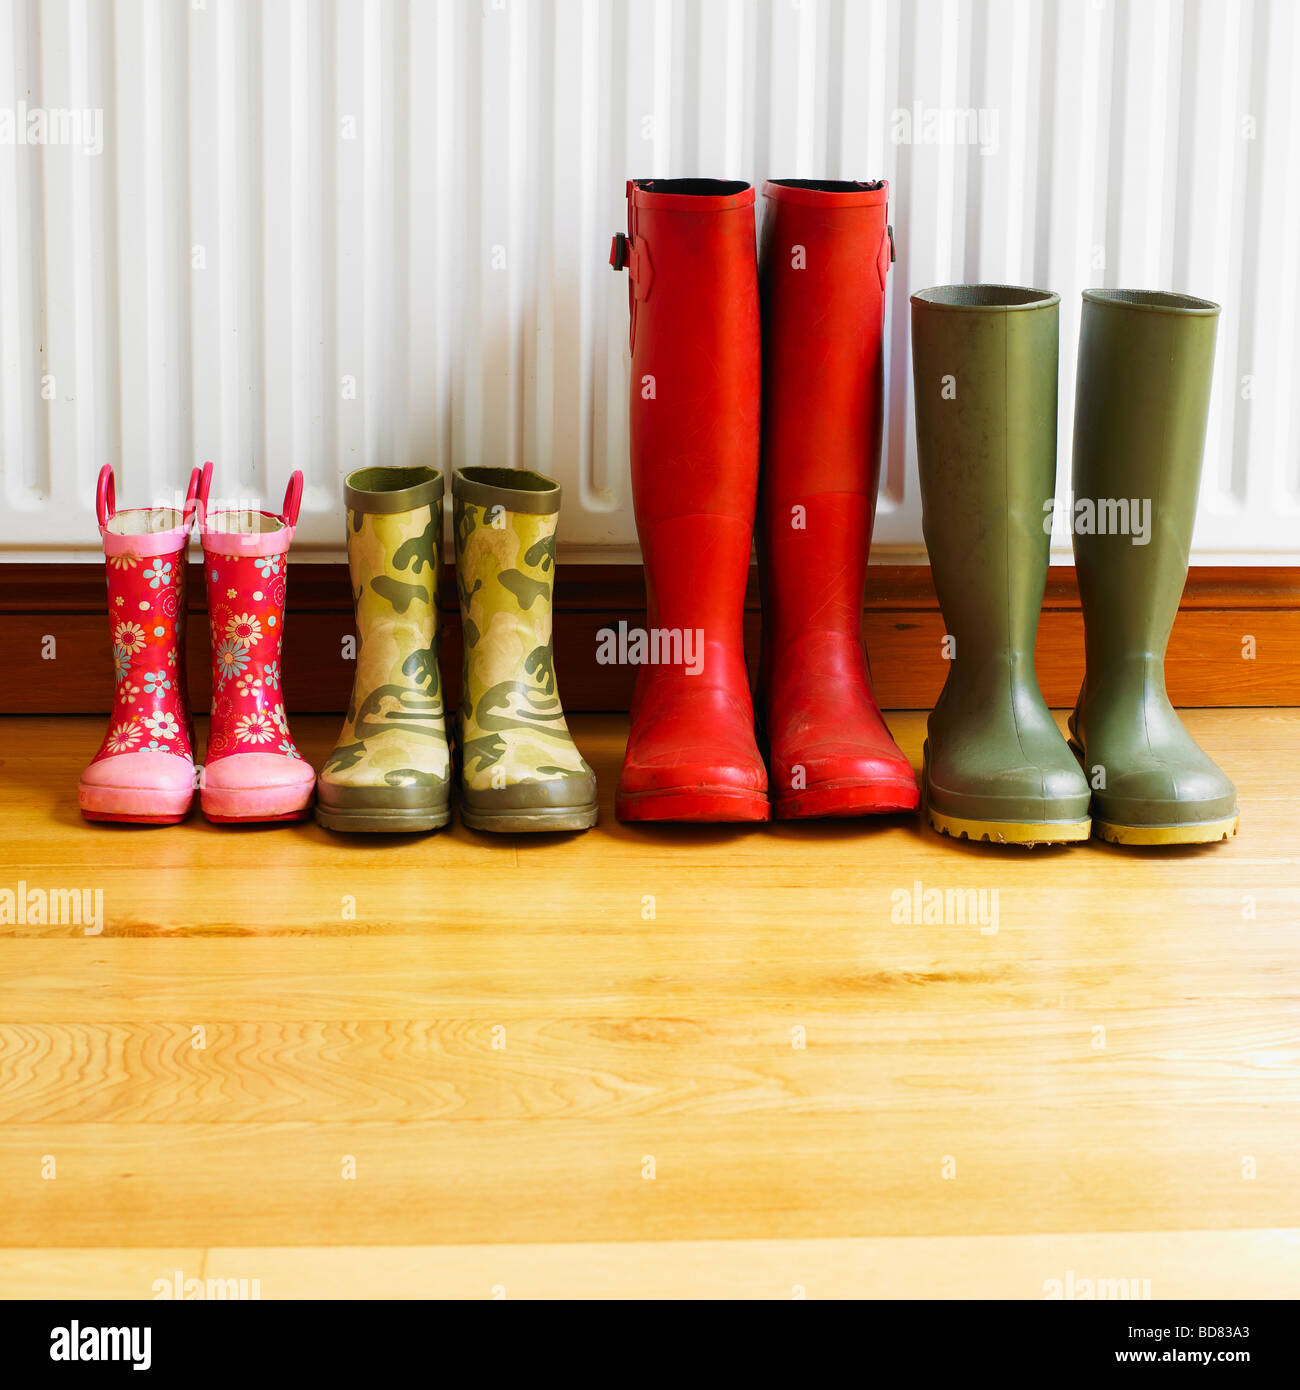 A family's Wellington boots drying in front of a radiator. - Stock Image